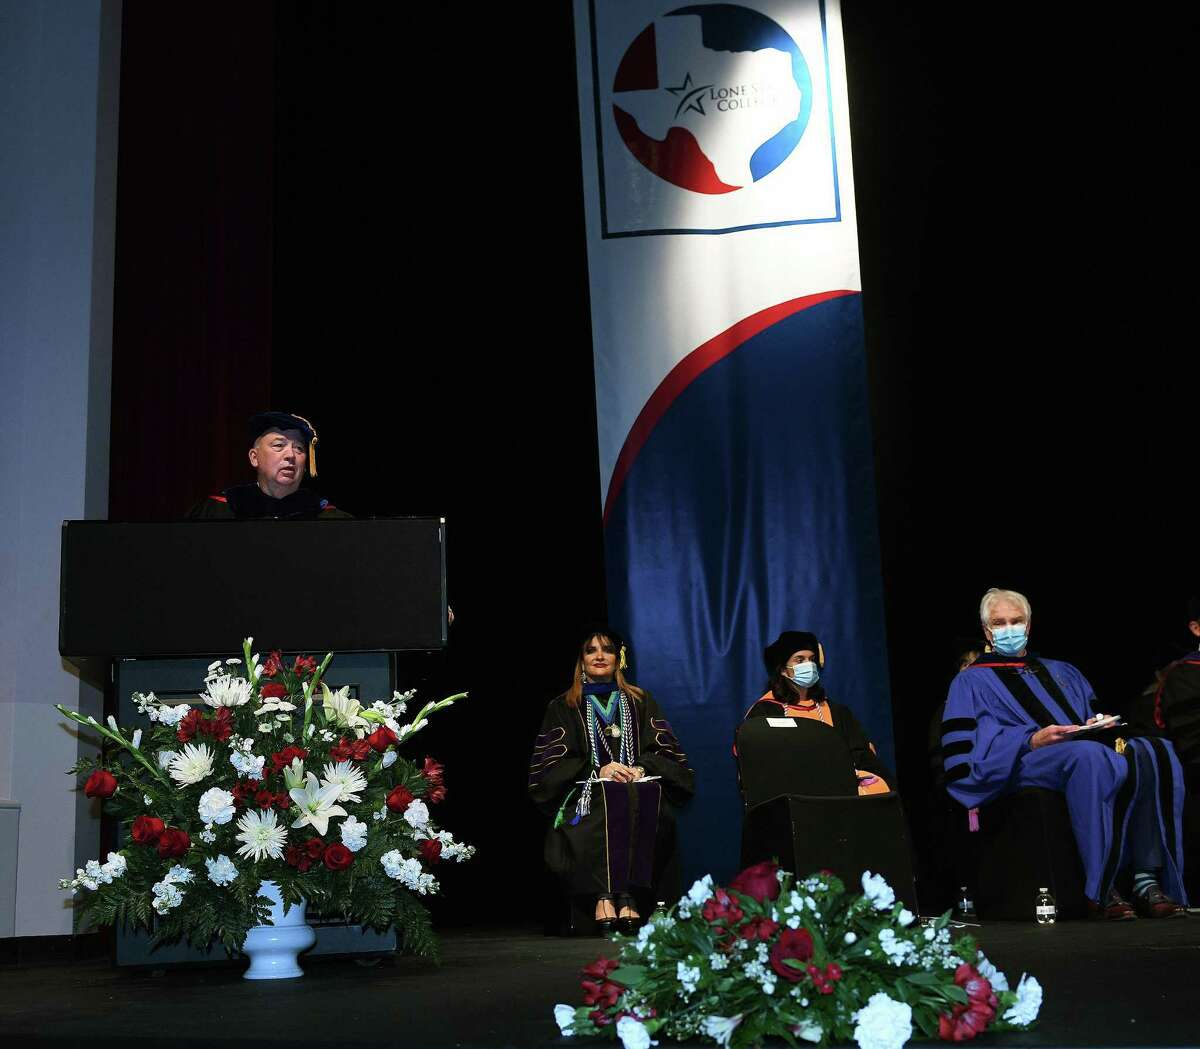 Stephen C. Head, Ph.D., Lone Star College chancellor gives opening remarks at the pinning ceremony for the first RN to BSN graduates in the history of the school.